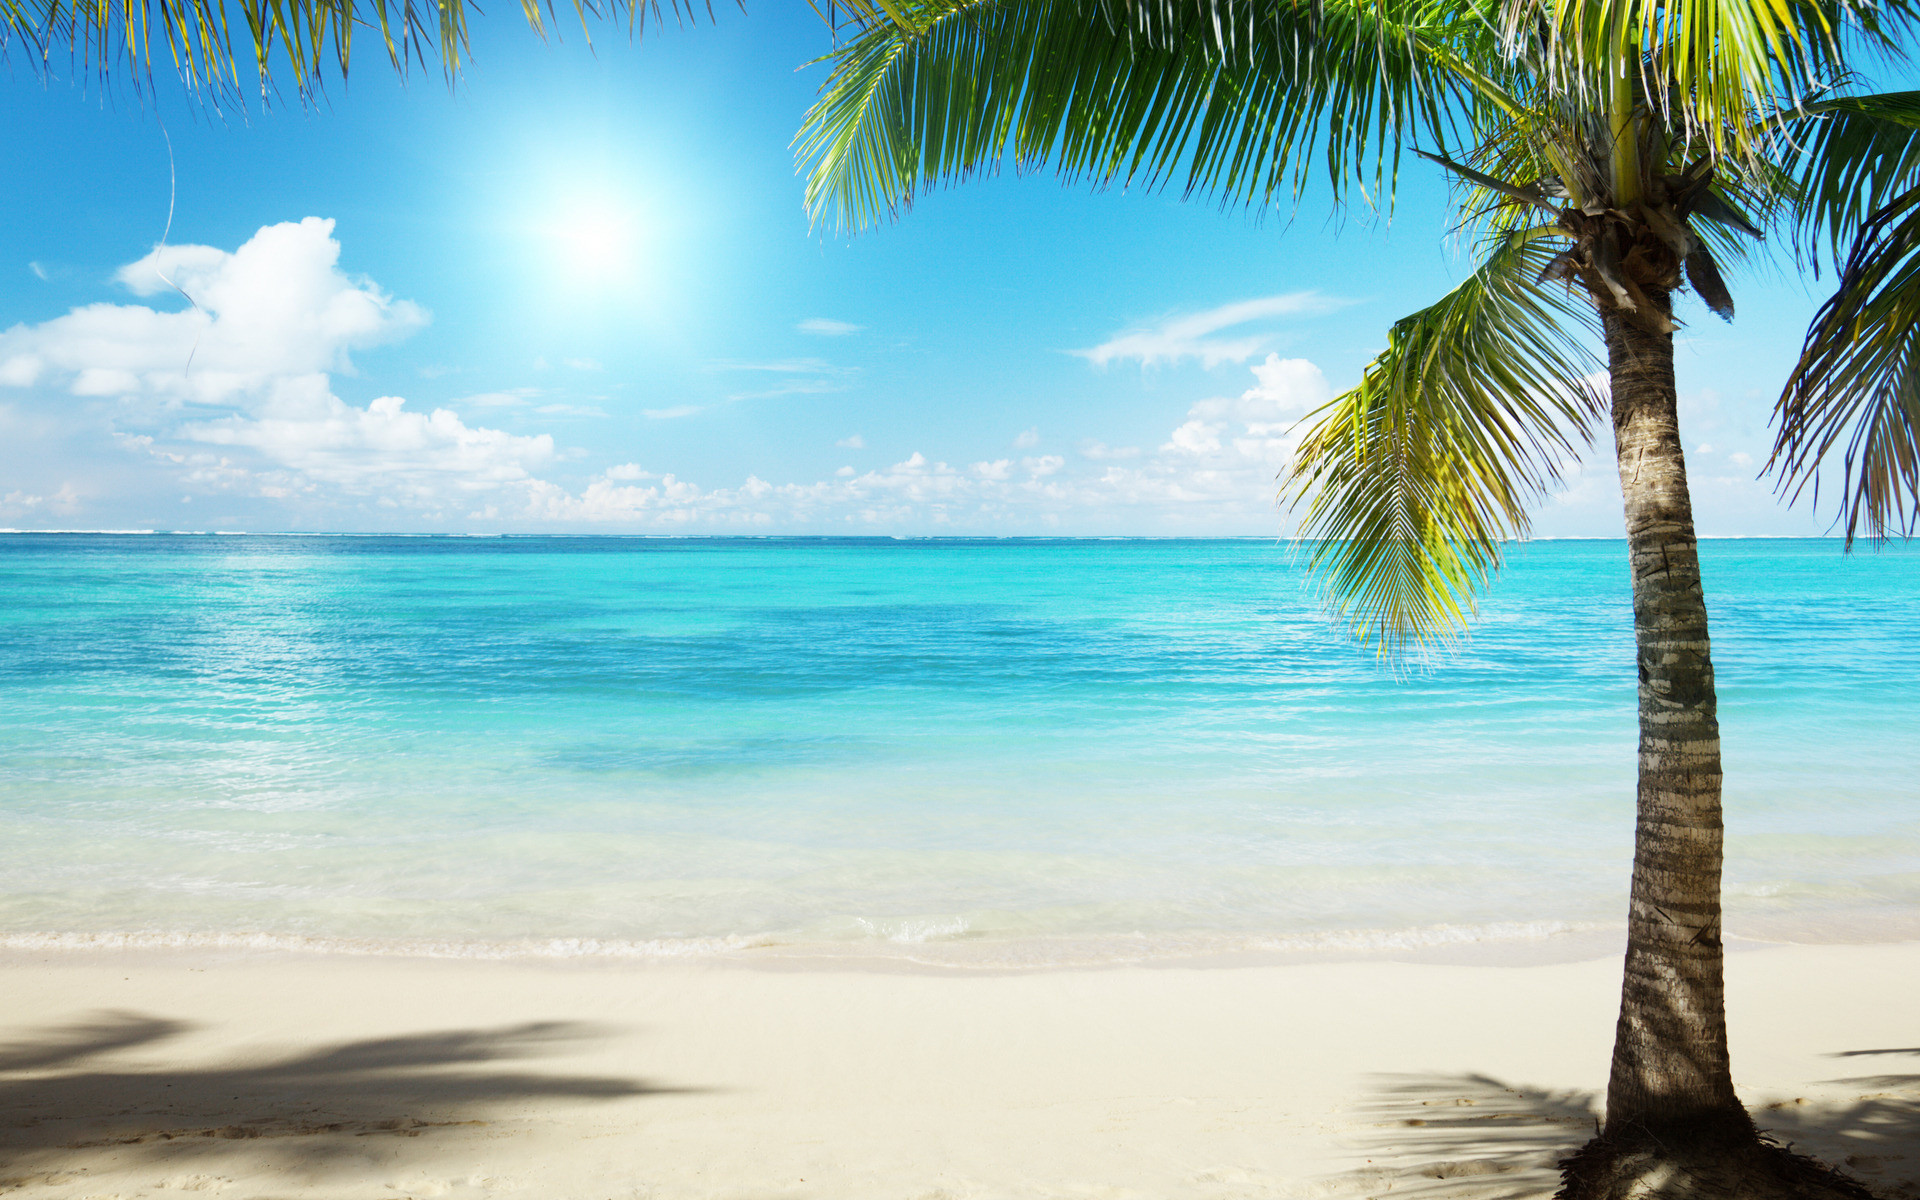 High Resolution Live Palm Beach Backgrounds – 160198032, Eufemia Coppin